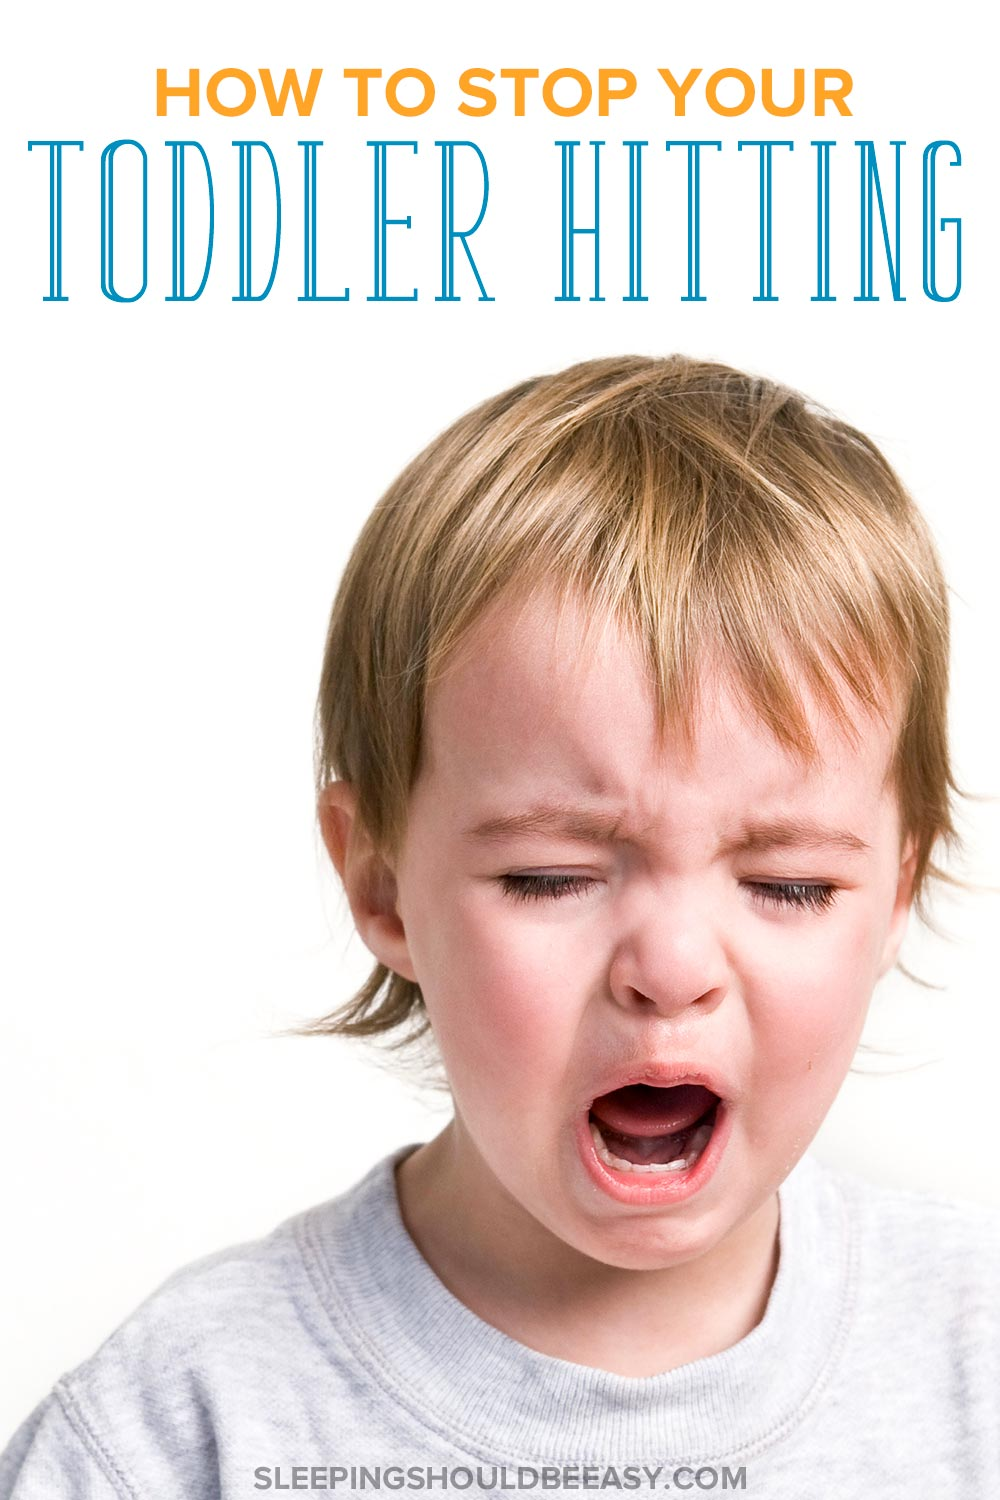 Little boy crying: How to stop your toddler hitting others